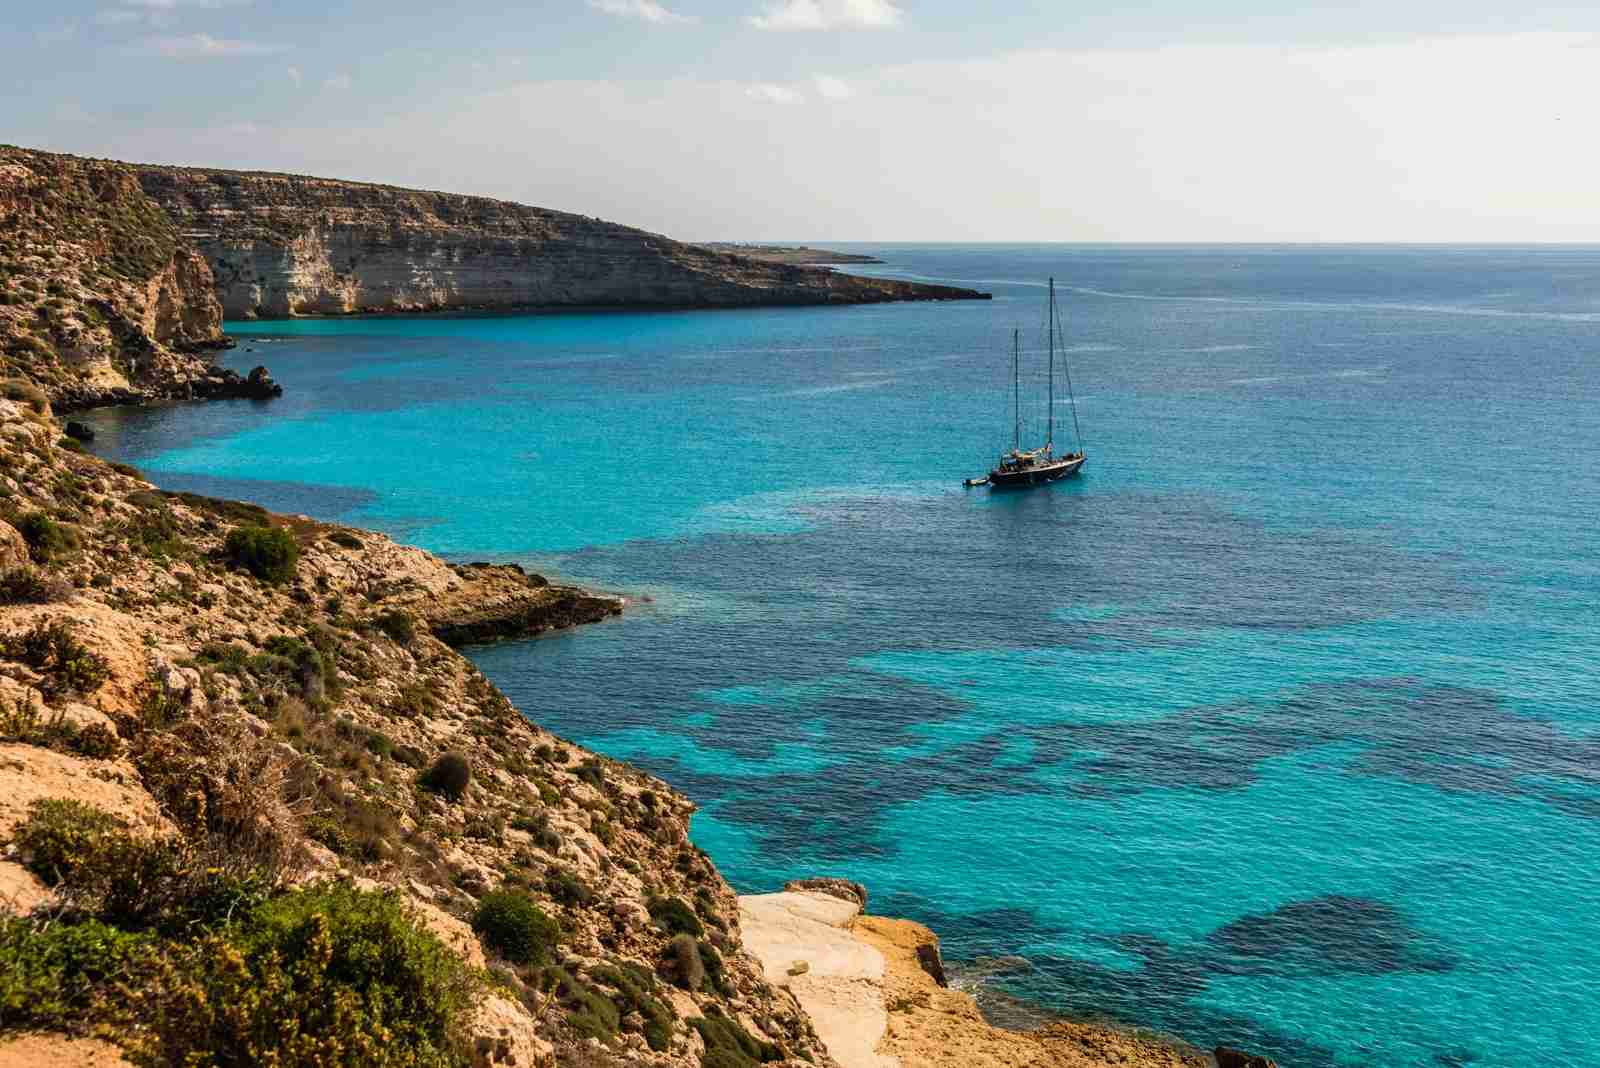 Rabbit Beach in Lampedusa, Pelagie Islands.(Photo by Vansky / Shutterstock